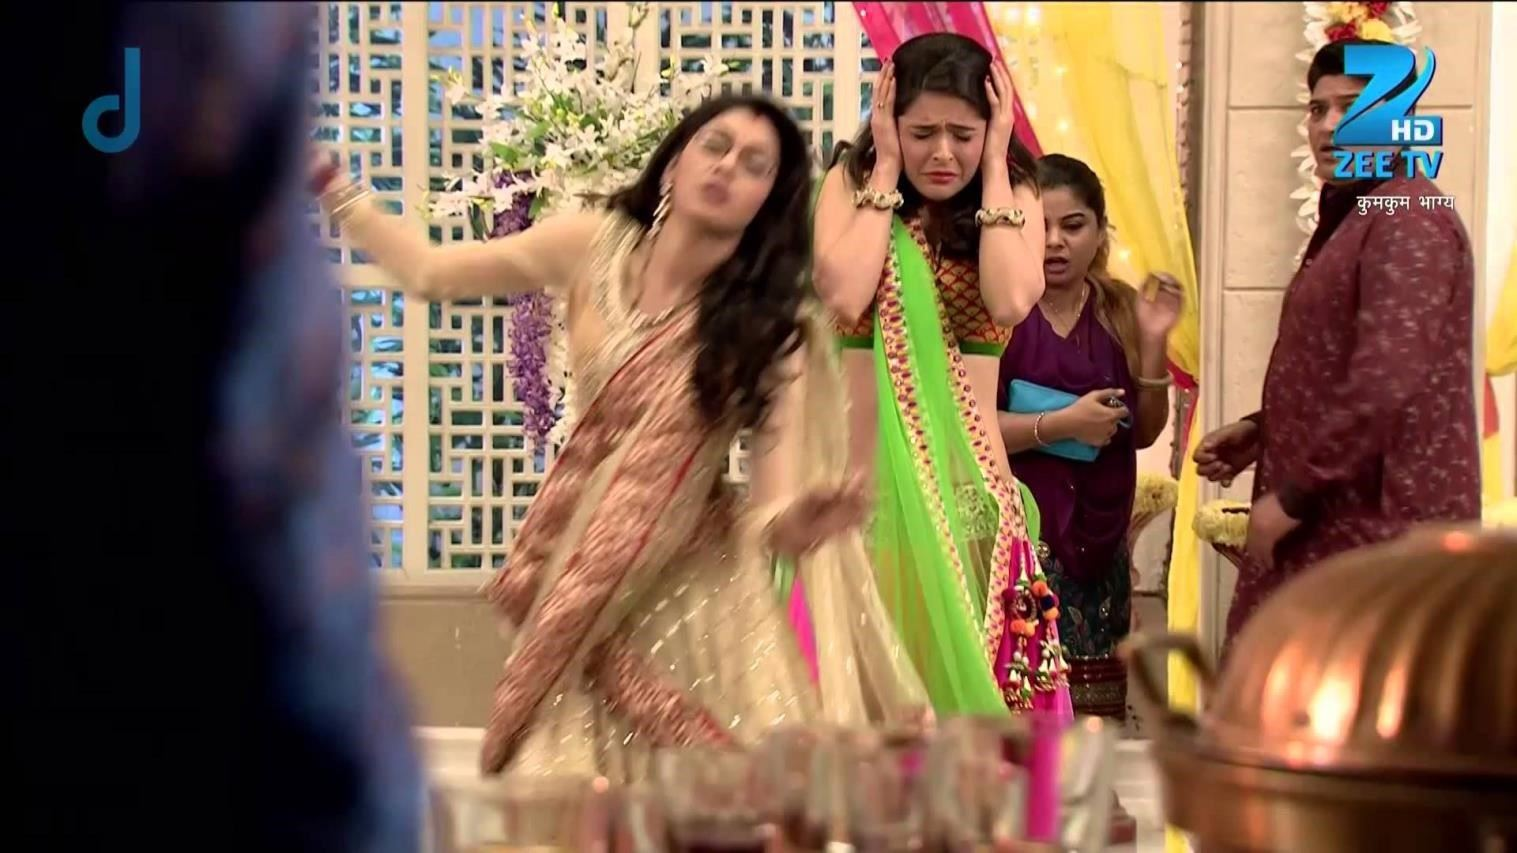 pragya pingsan dengar bulbul meninggal kumkum bhagya today episode dailymotion